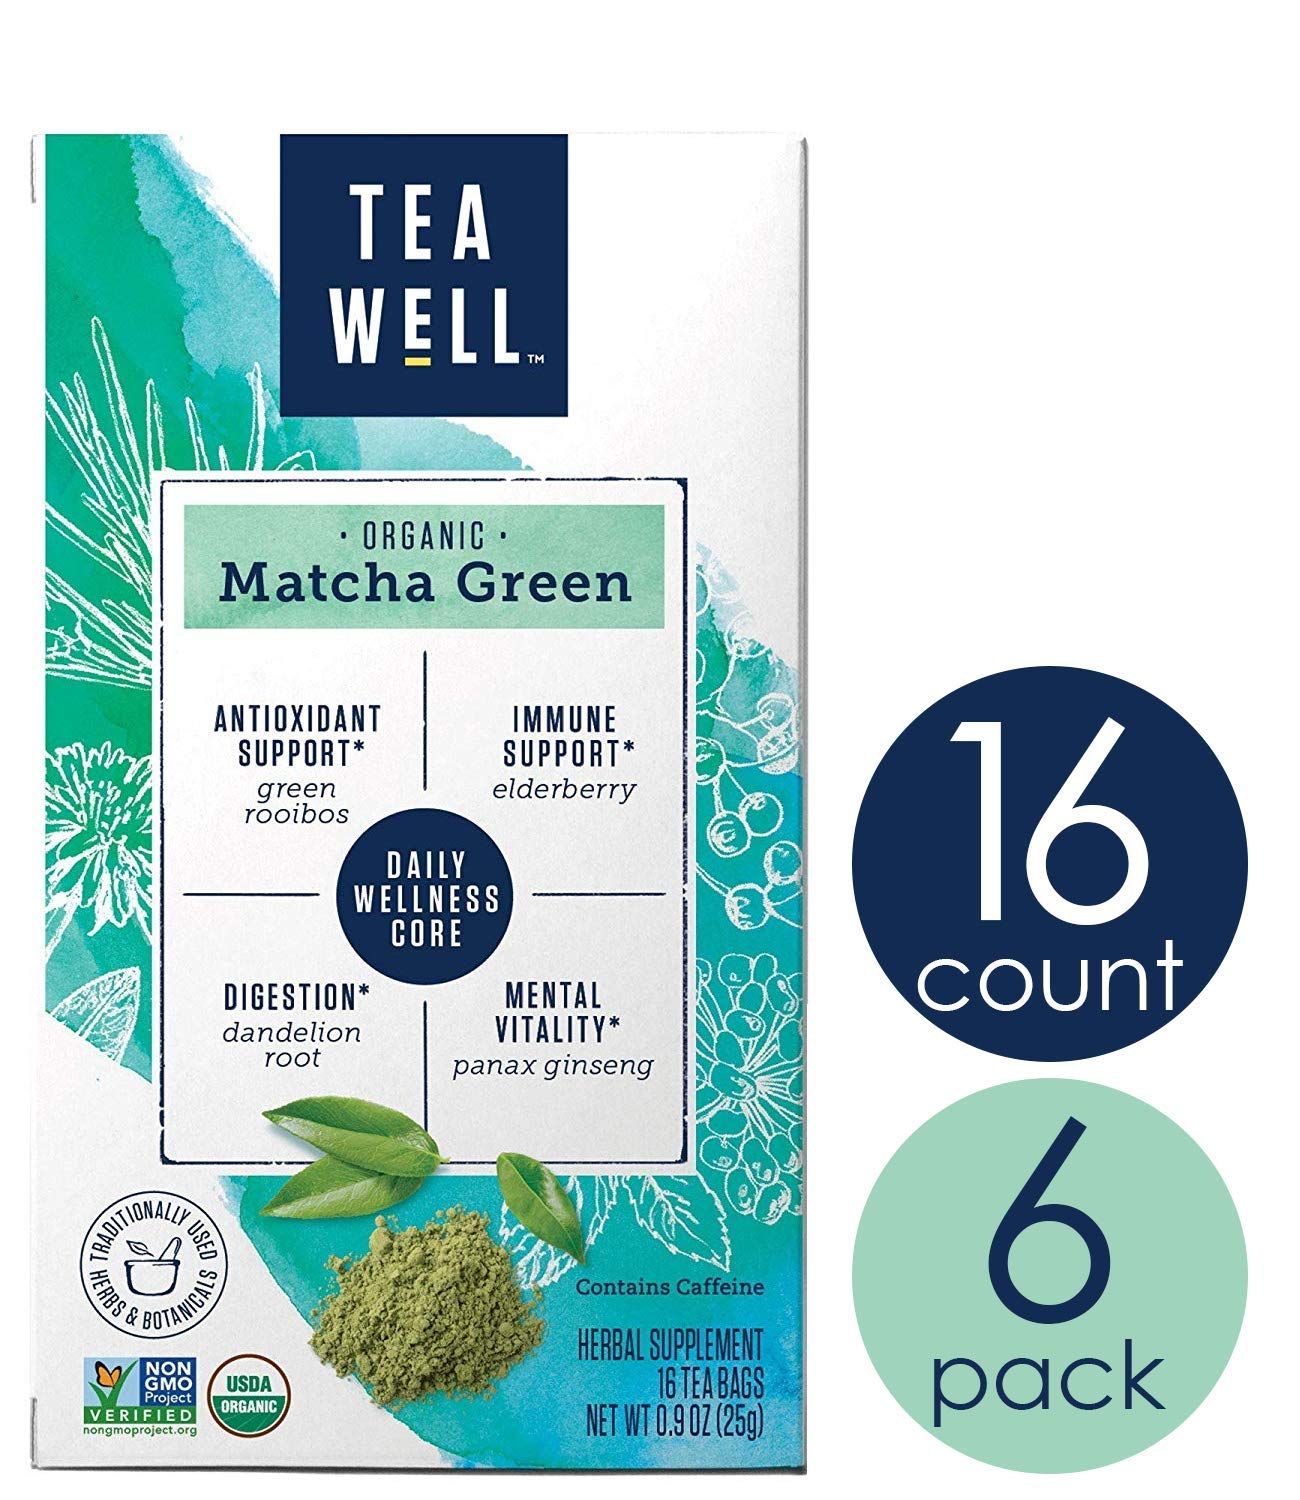 TeaWell Organic Matcha Green Wellness Tea, 16 Count Box (Pack of 6) by Tea Well